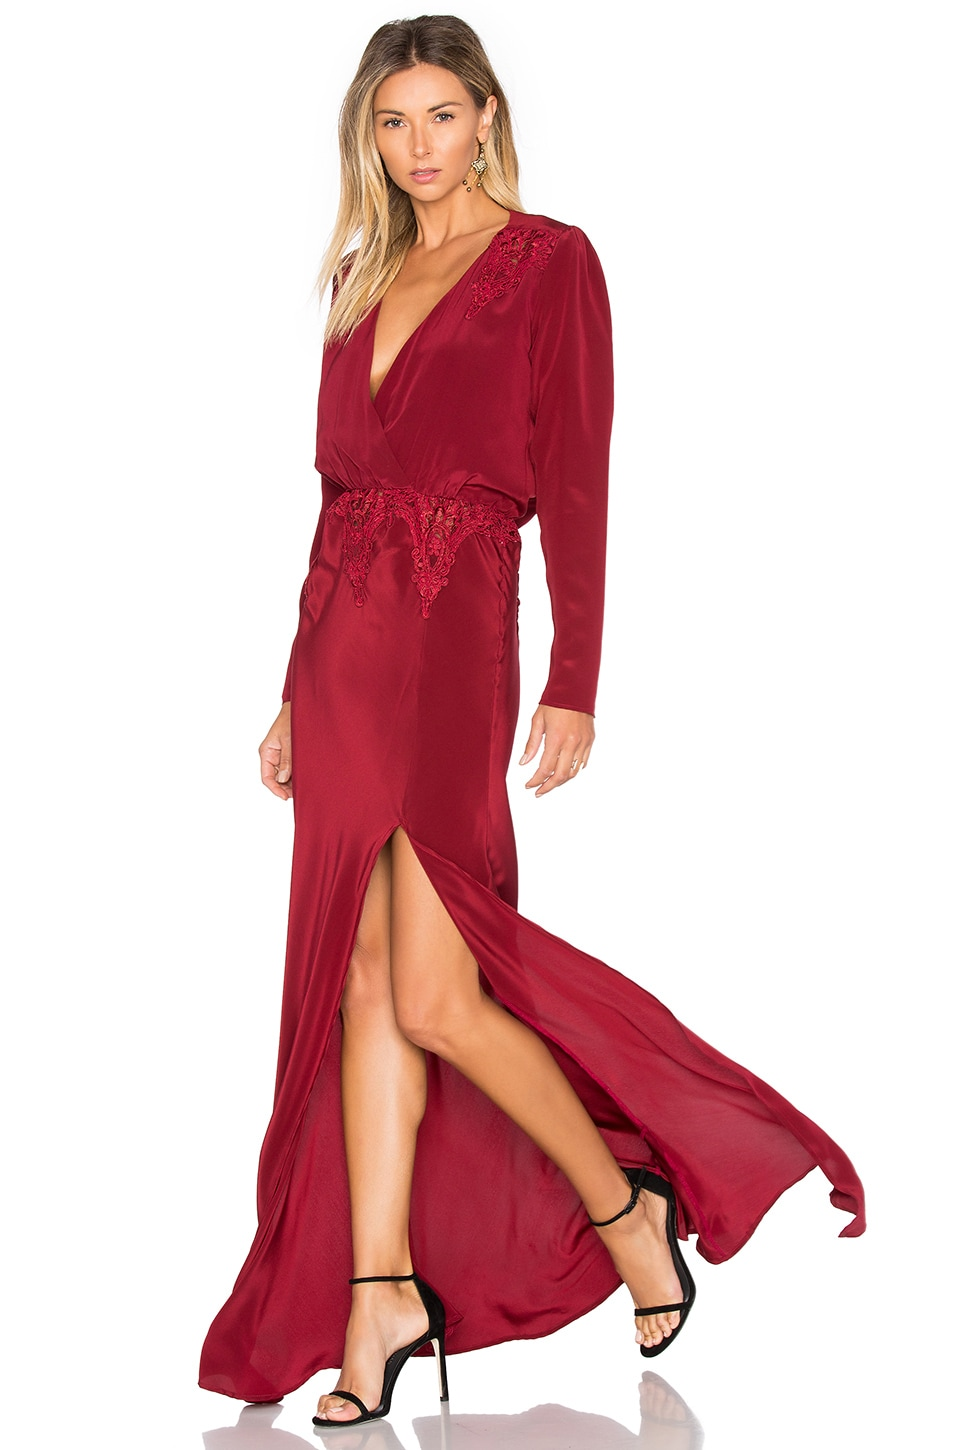 STONE_COLD_FOX x REVOLVE Alabama Gown in Red